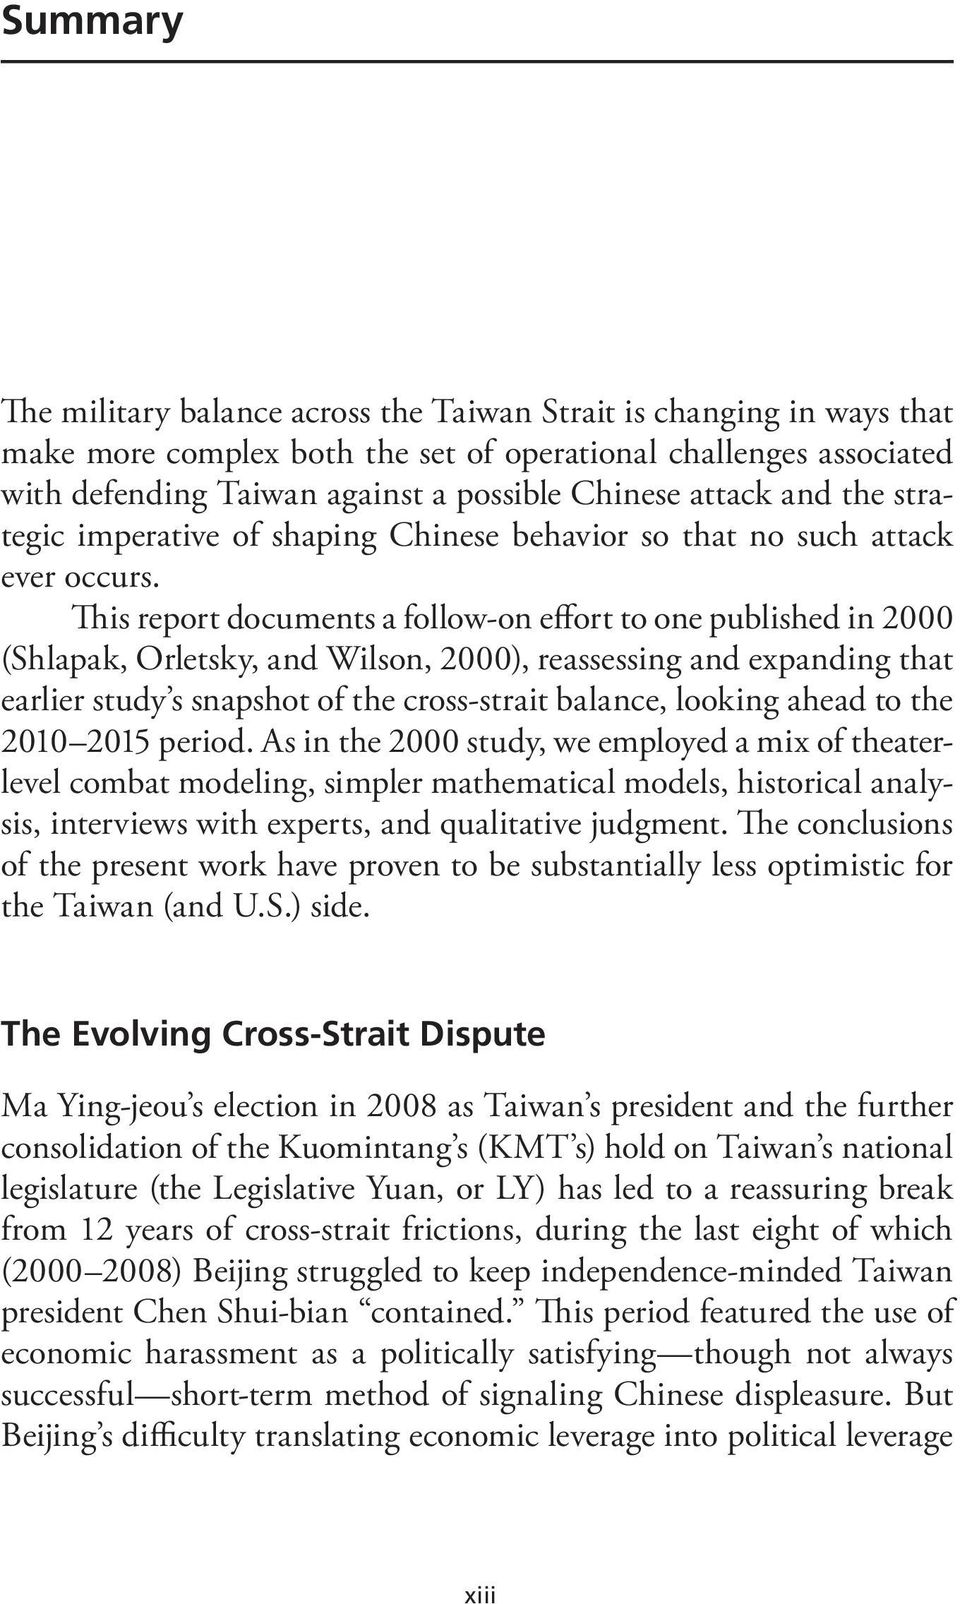 This report documents a follow-on effort to one published in 2000 (Shlapak, Orletsky, and Wilson, 2000), reassessing and expanding that earlier study s snapshot of the cross-strait balance, looking